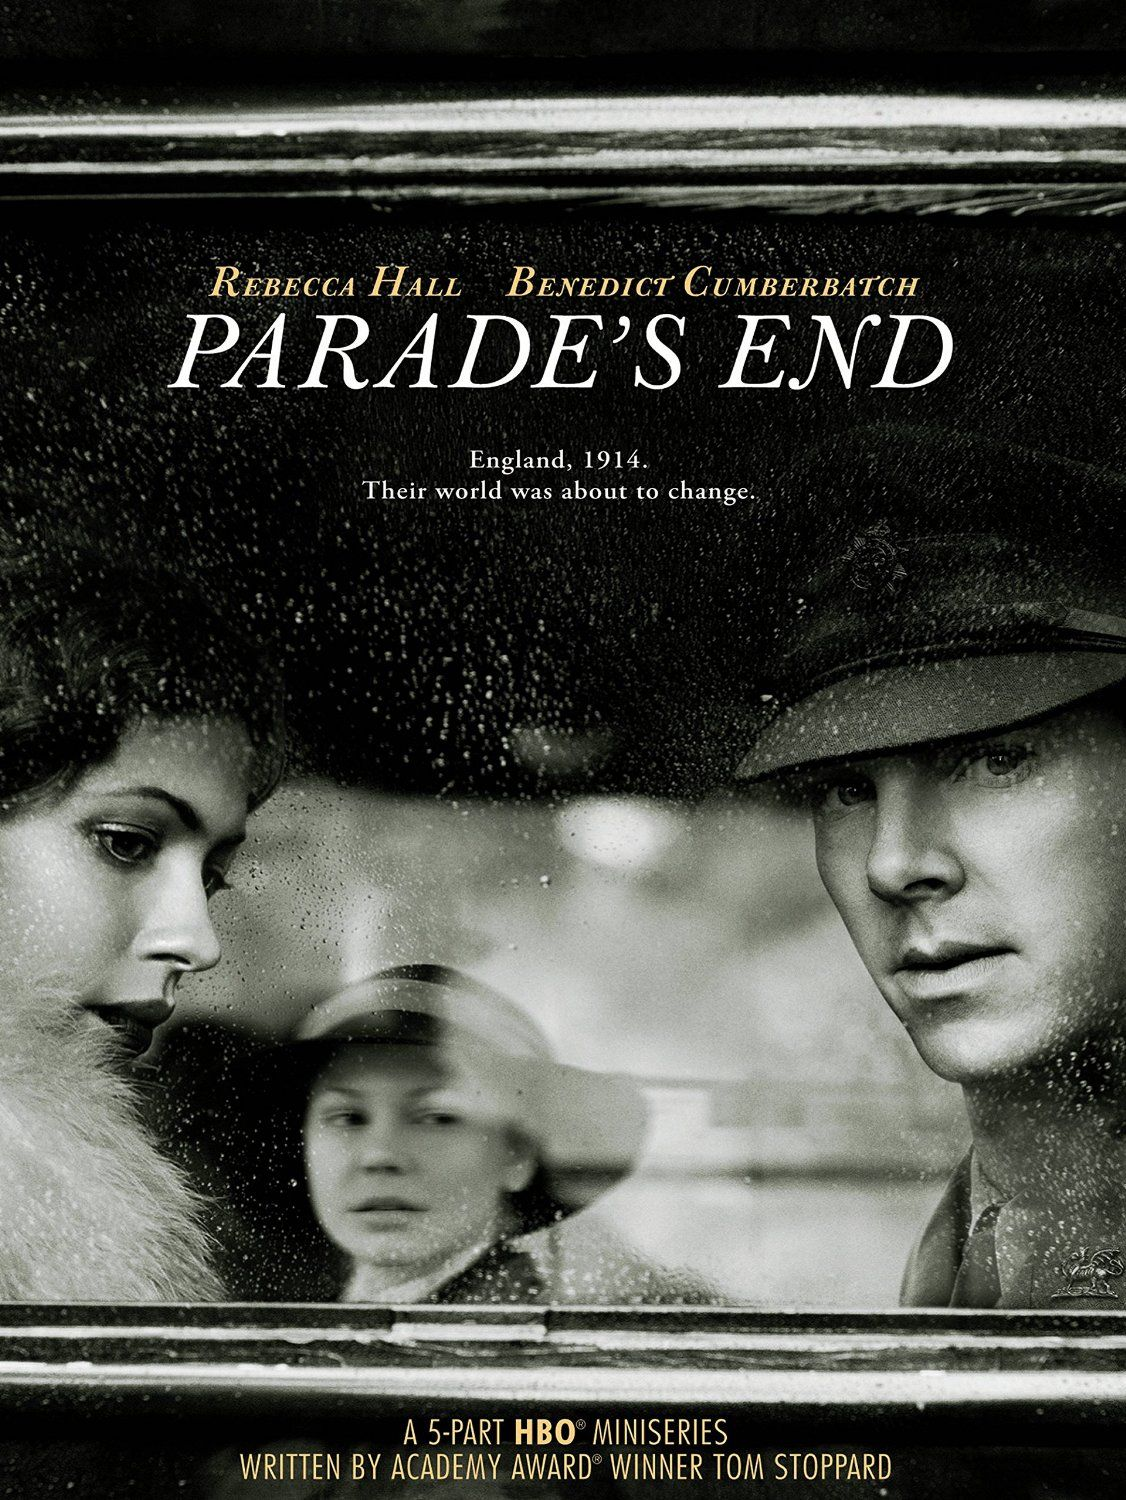 Rebecca Hall, Adelaide ClemensParade's End S01 - 2012 HD new images